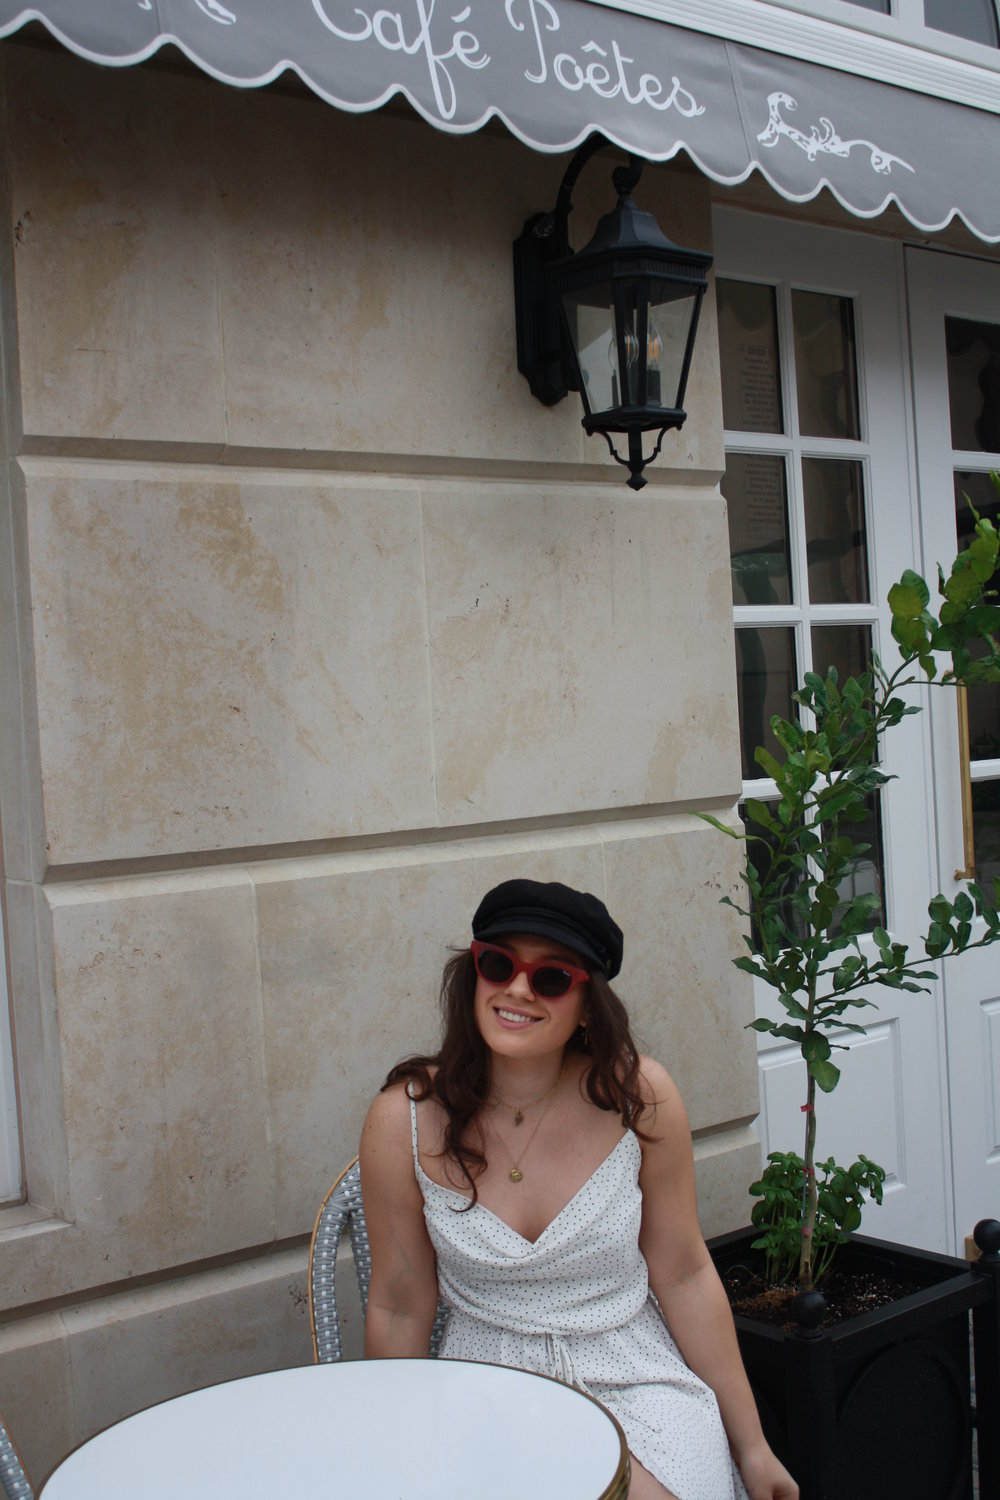 Hat: Brixton; Sunglasses: Quay; Jewelry: Frasier Sterling and Child of Wild; Dress: MinkPink